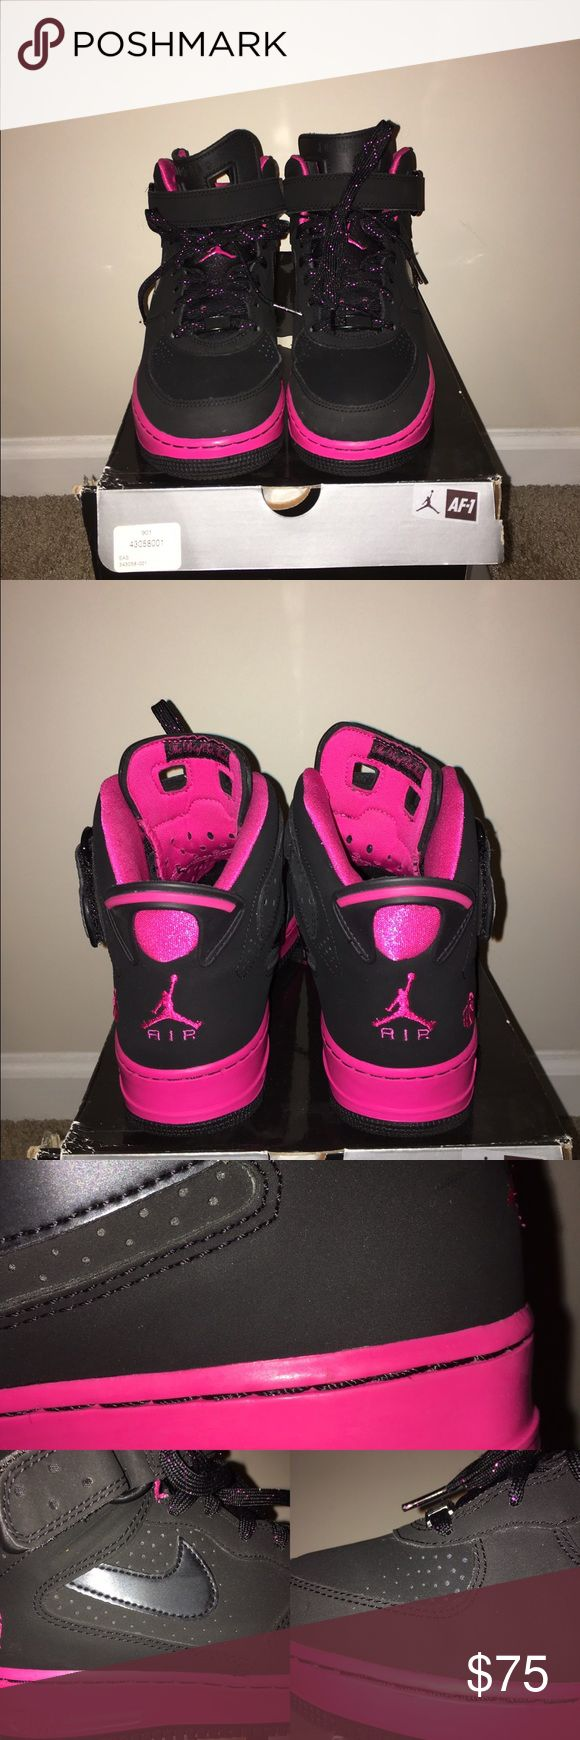 Girls AJF 6 Youth size 7 Girls Air Jordan Forces 6 in black and vivid pink. High top sneakers with Velcro straps. Worn twice. Has a few dark marks/defects (see 3rd pic) around the soles but barely noticeable. Shoes are in great condition. Grade school youth size 7, which can easily fit a woman size 9. Box is slightly damaged. Jordan Shoes Sneakers